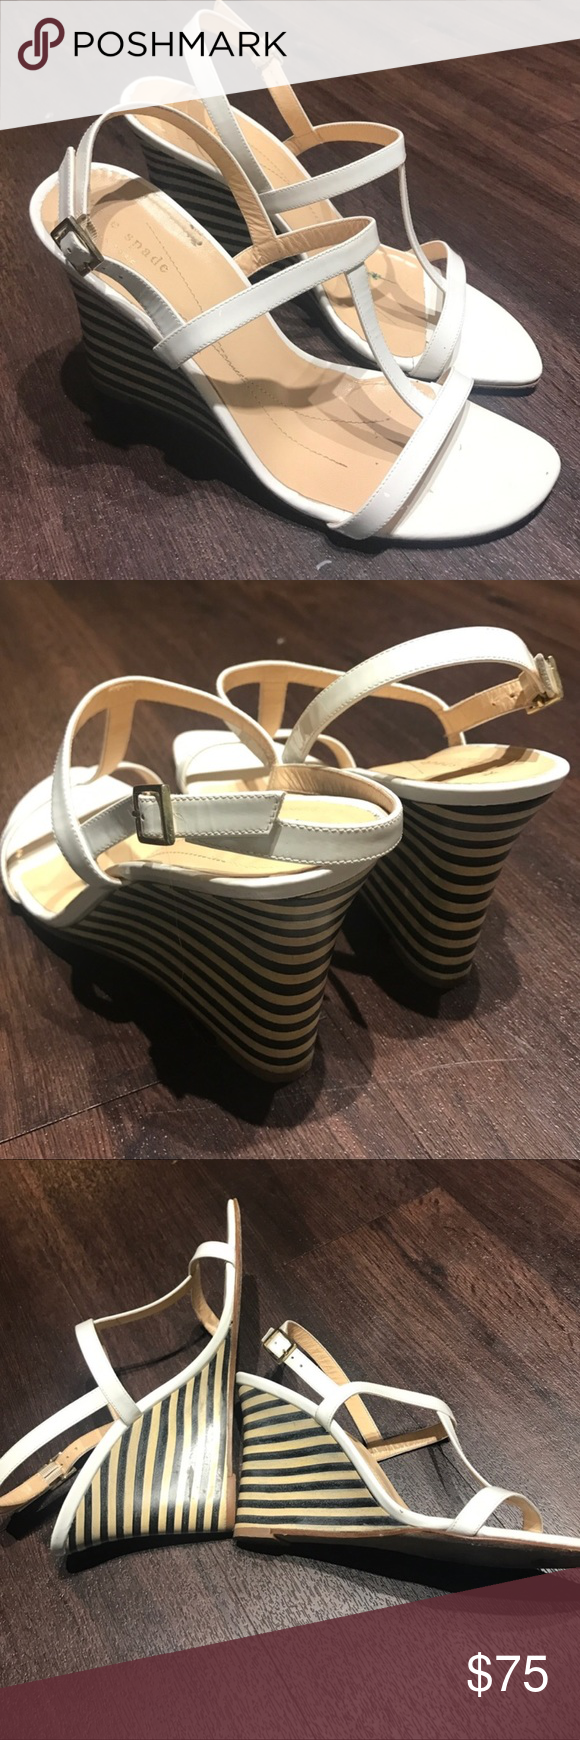 Kate Spade Wedges Kate Spade wedges in mint condition kate spade Shoes Wedges